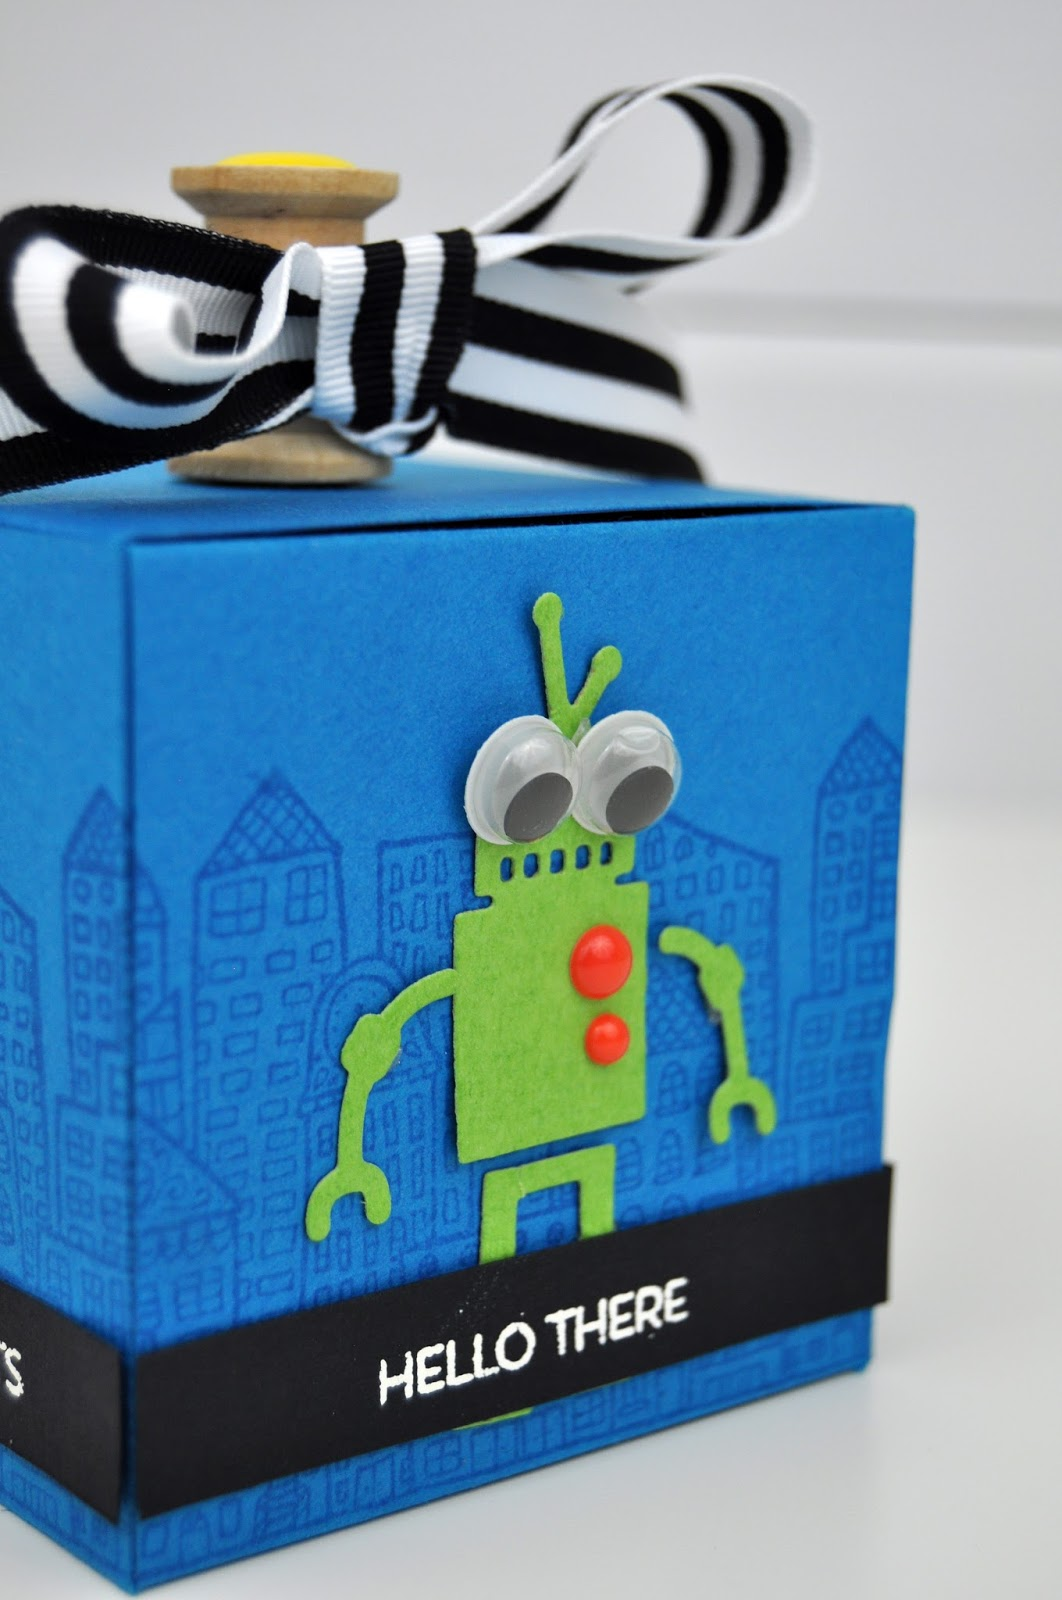 Spellbinders die cut Robot Gift Box by www.jengallacher.com #teamspellbinders #jengallacher #diecutting #giftbox